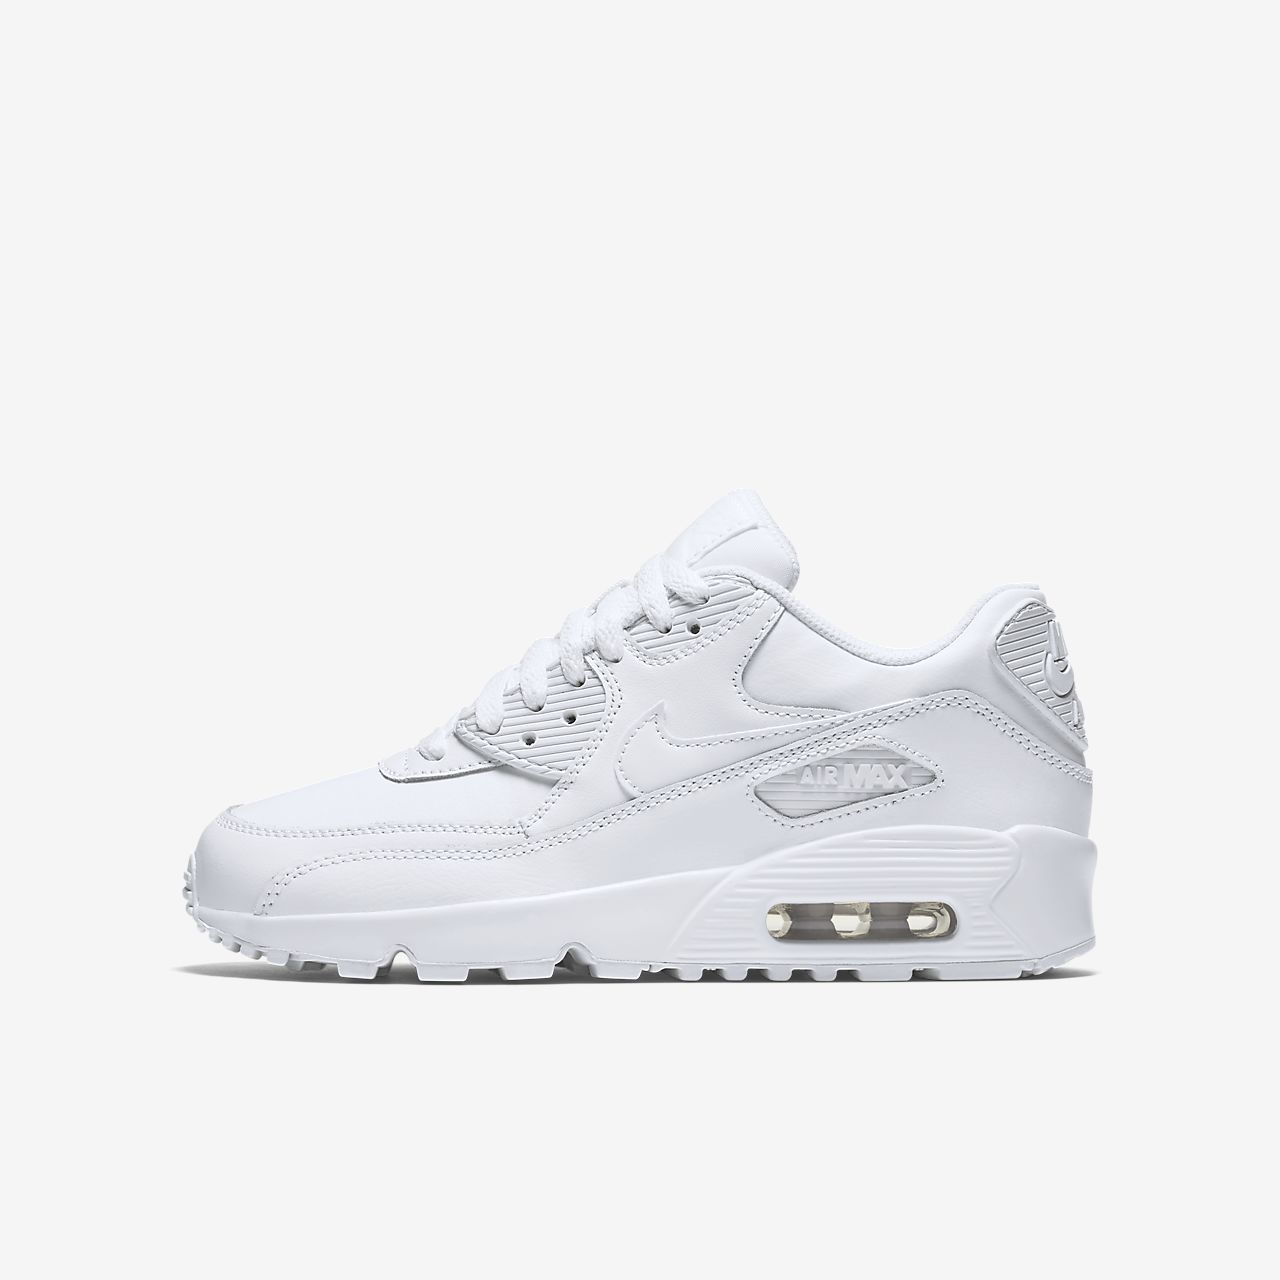 size 40 9fd44 7245a ... Sko Nike Air Max 90 Leather för ungdom